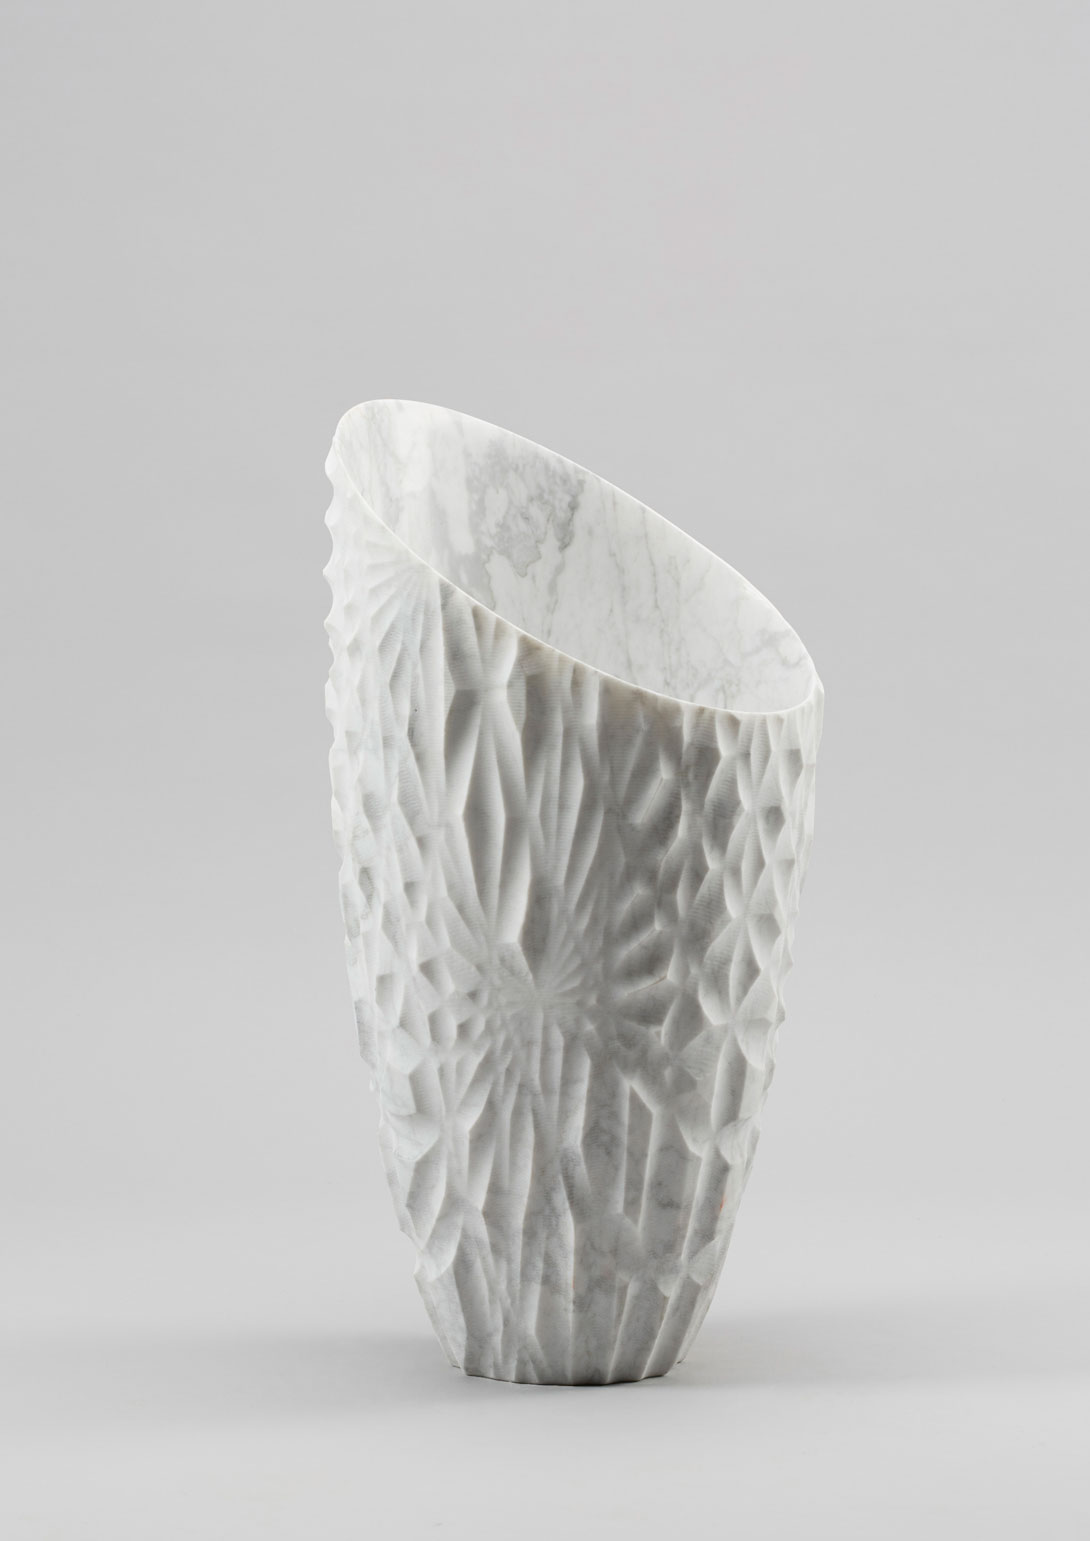 Lapicida, Erosion Vase, 289 x 585 mm. Photo via Alpha - Kilo.